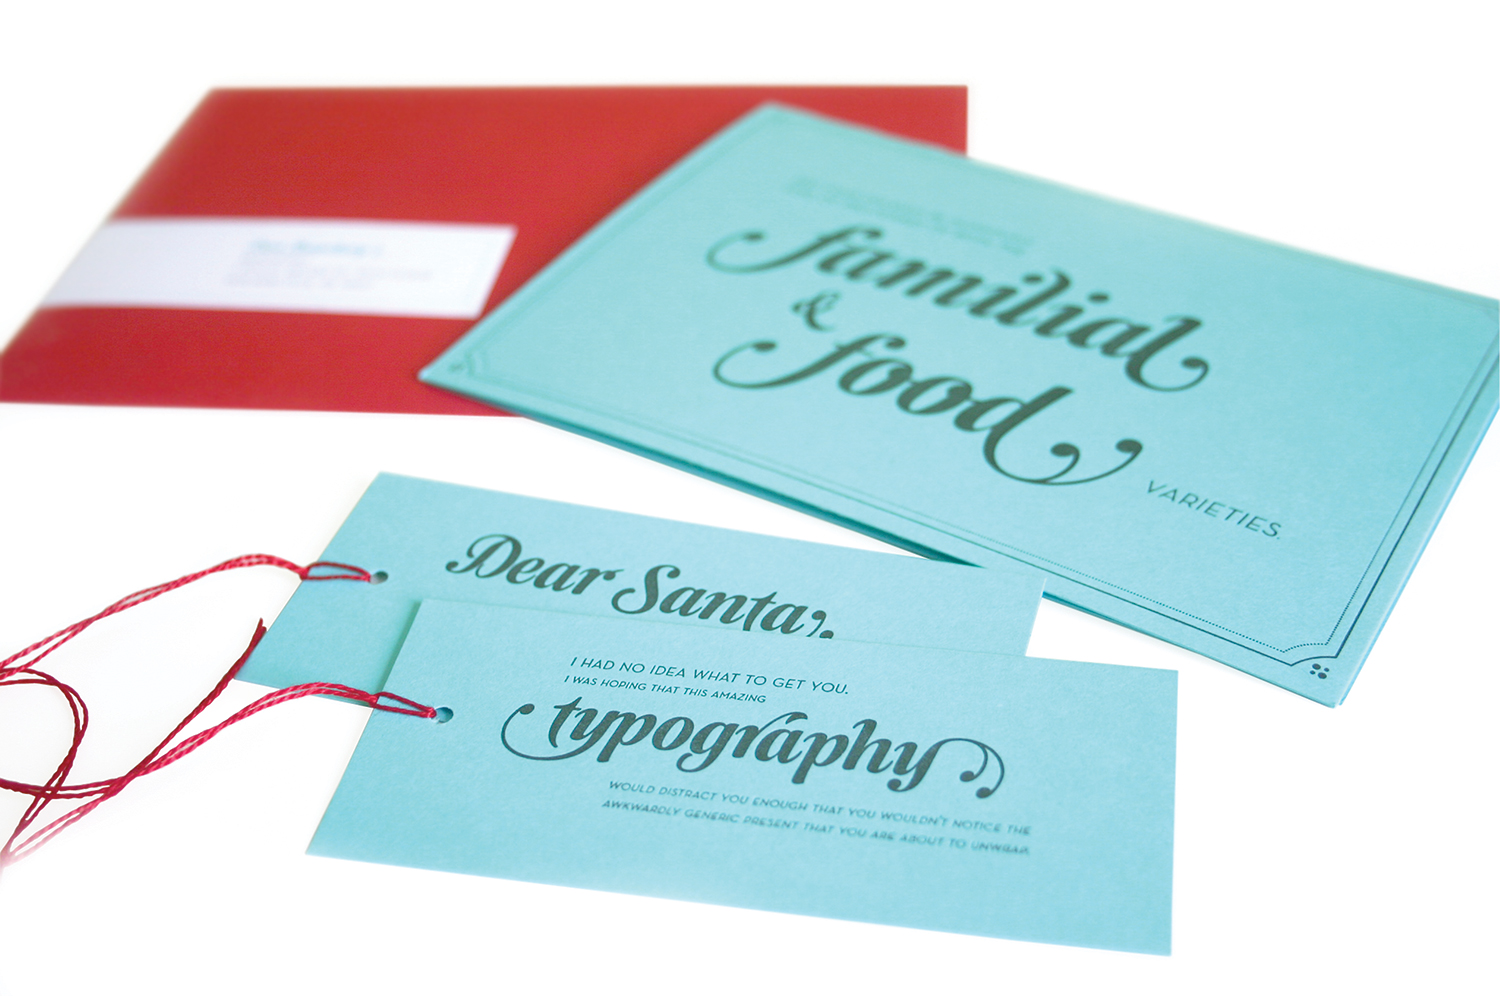 Julie Rado Design Christmas Card & Gift Tag Self-Promotion